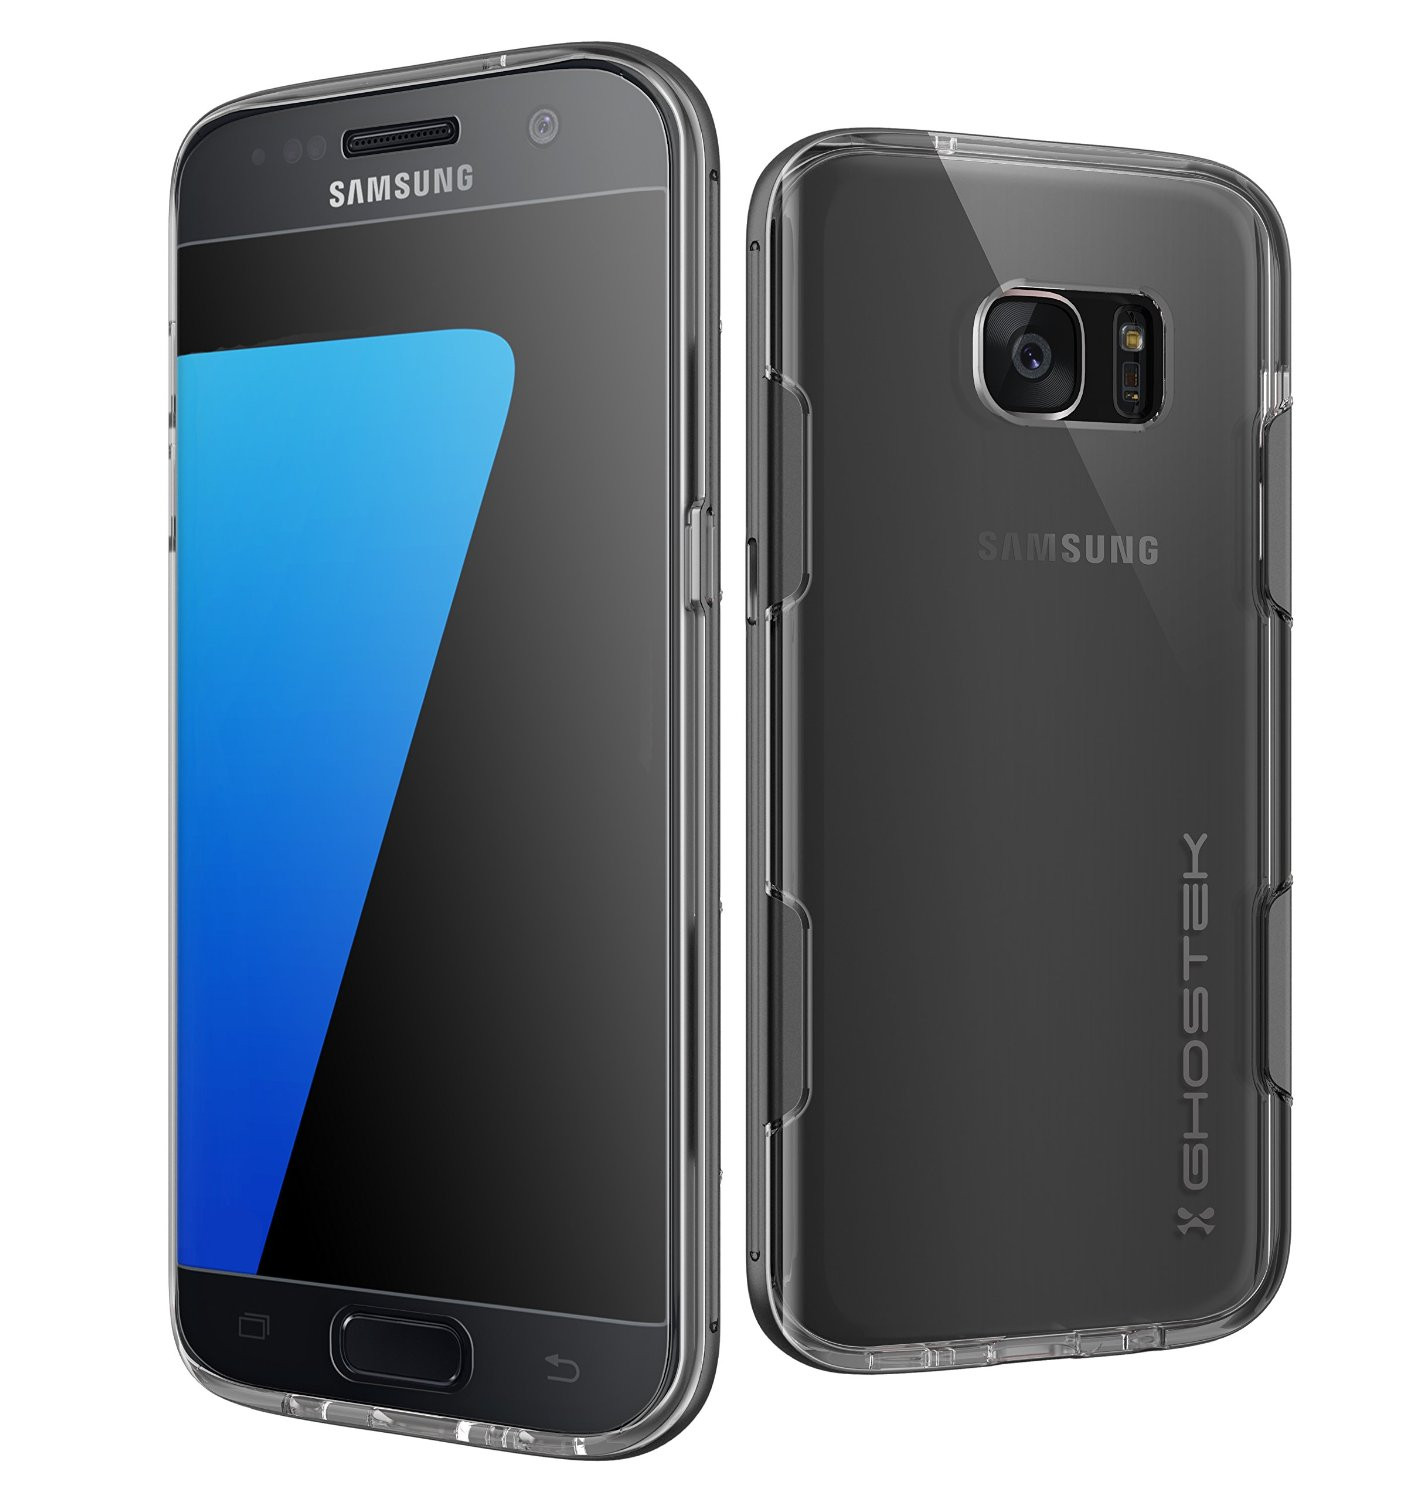 Samsung Cases For S6 Edge And S7 Edge We Review Ghosteks